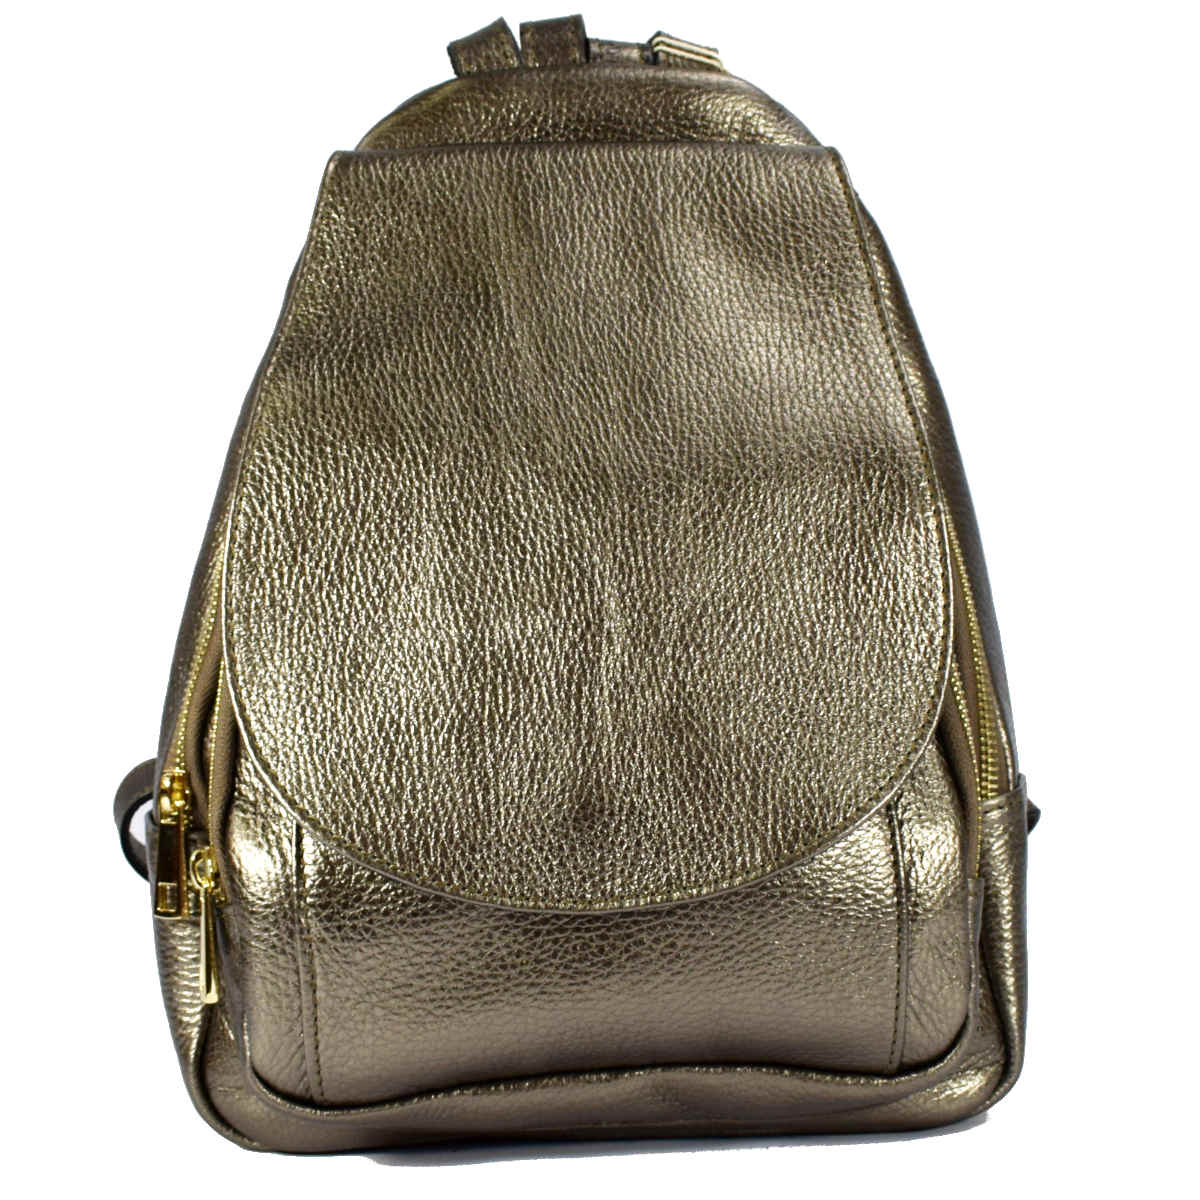 12737 SMALL BACKPACK WITH FLAP AND ZIPPERS by Bottega Fiorentina